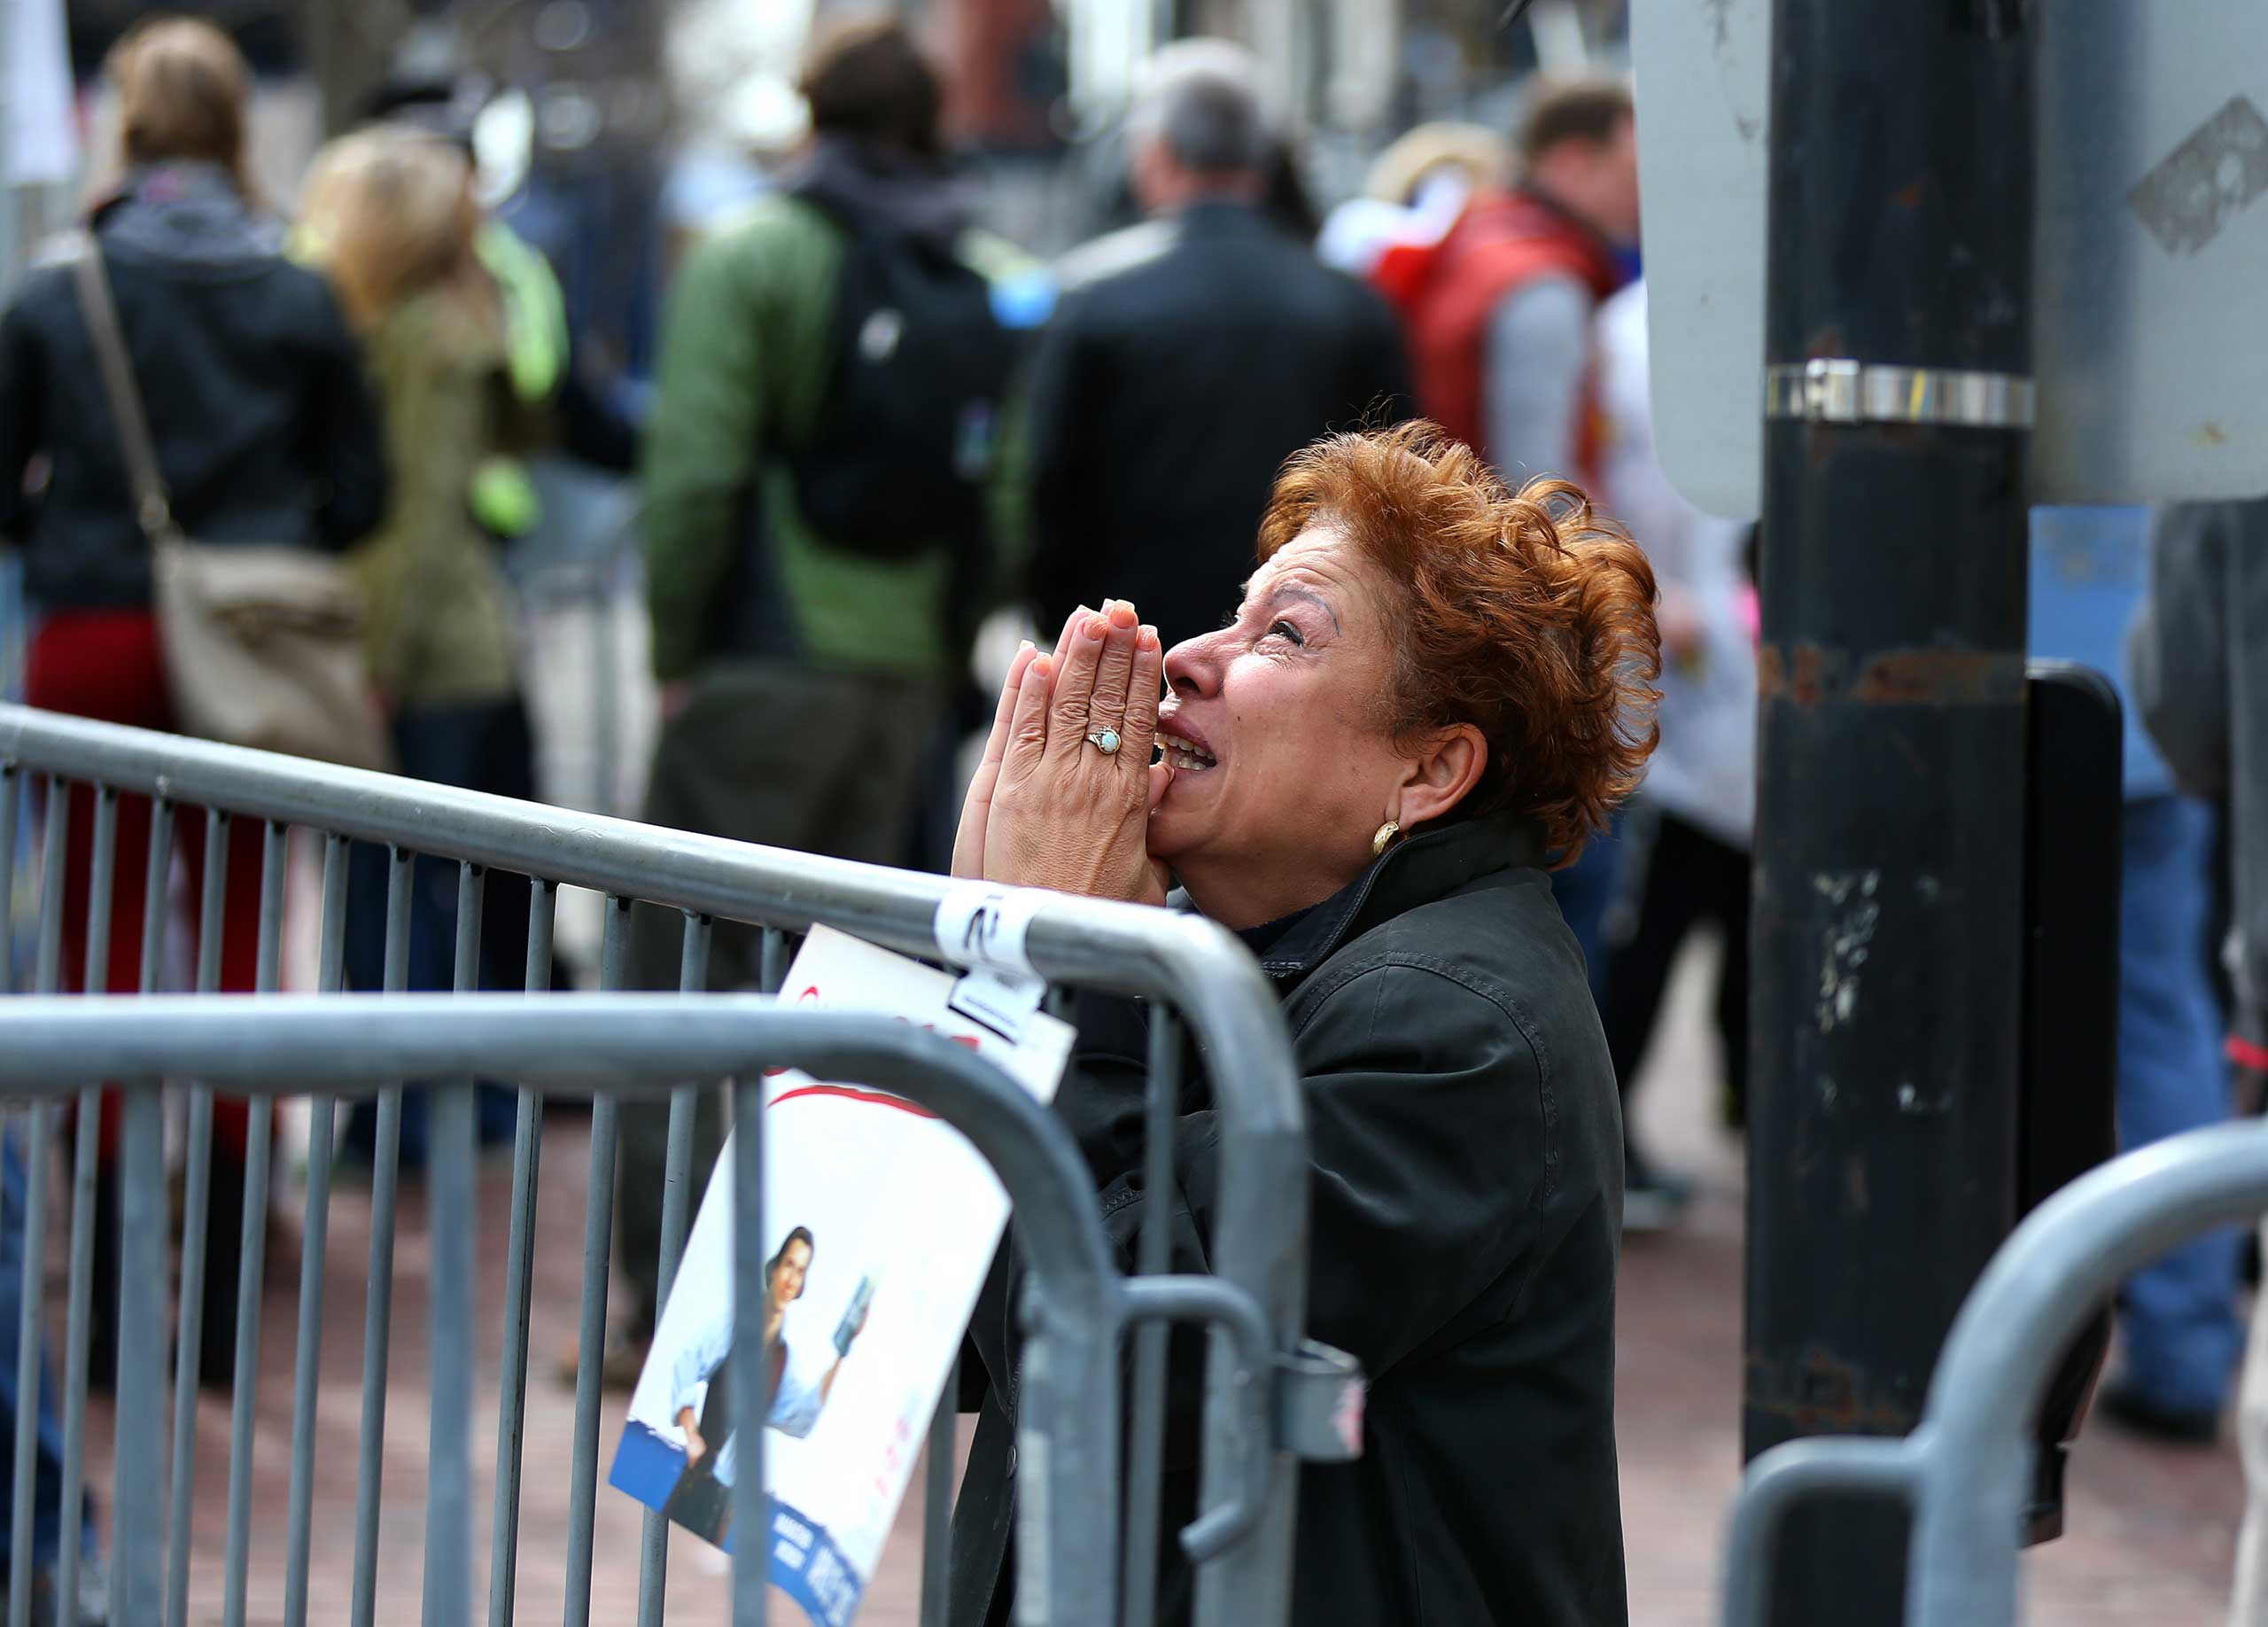 April 15, 2013. A woman prays at the scene of the explosion.